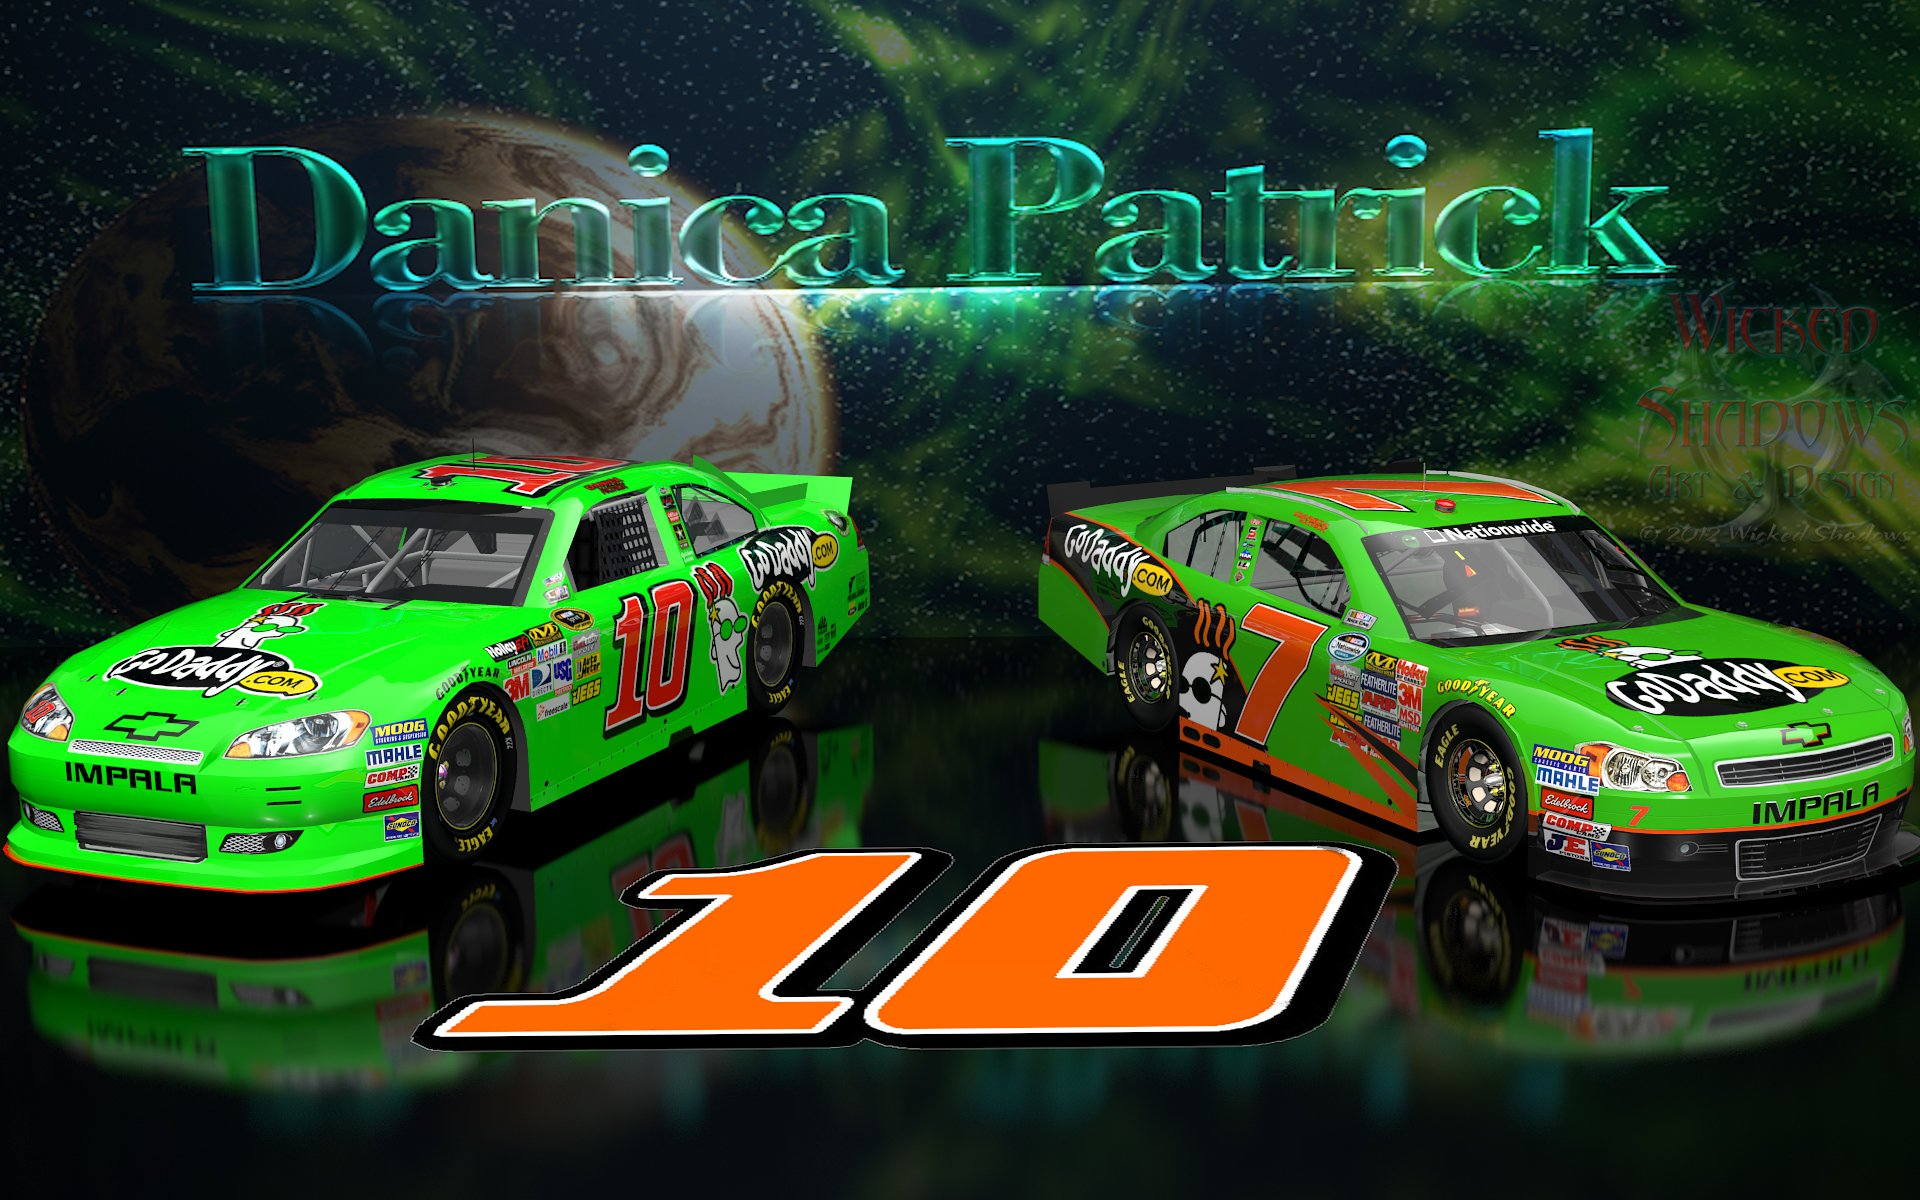 Danica Patrick NNS And Cup Go Daddy Cars wallpaper 16x10 1920x1200